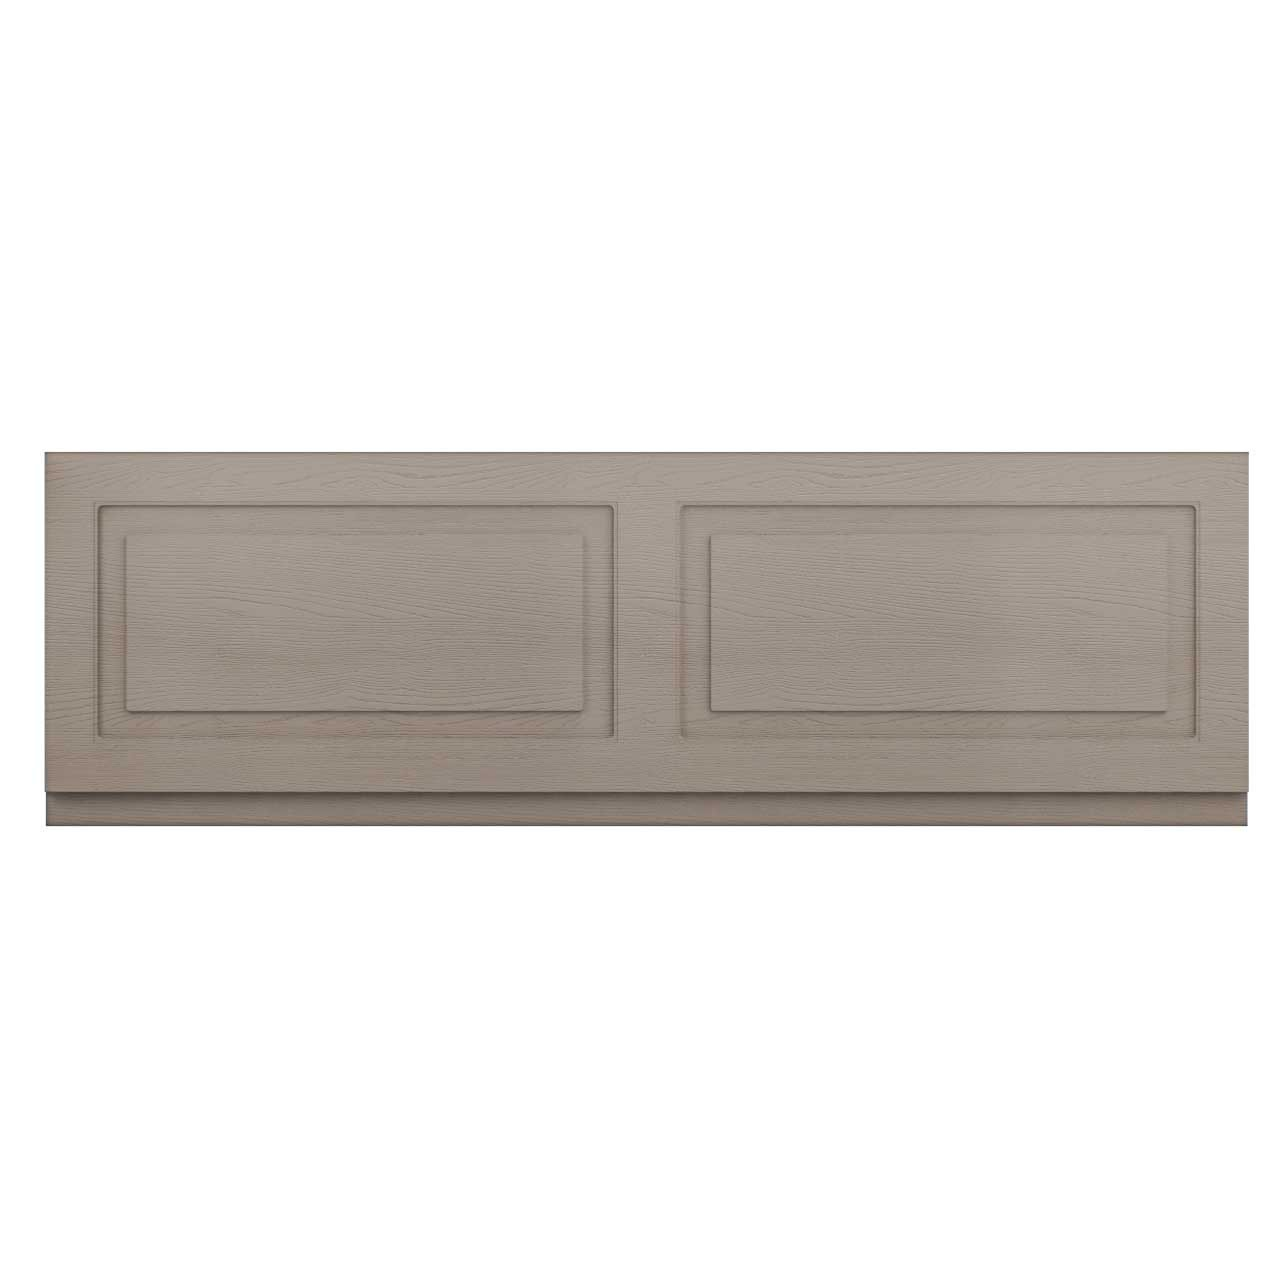 Windsor Traditional Stone Grey 1700mm Front Bath Panel with Plinth